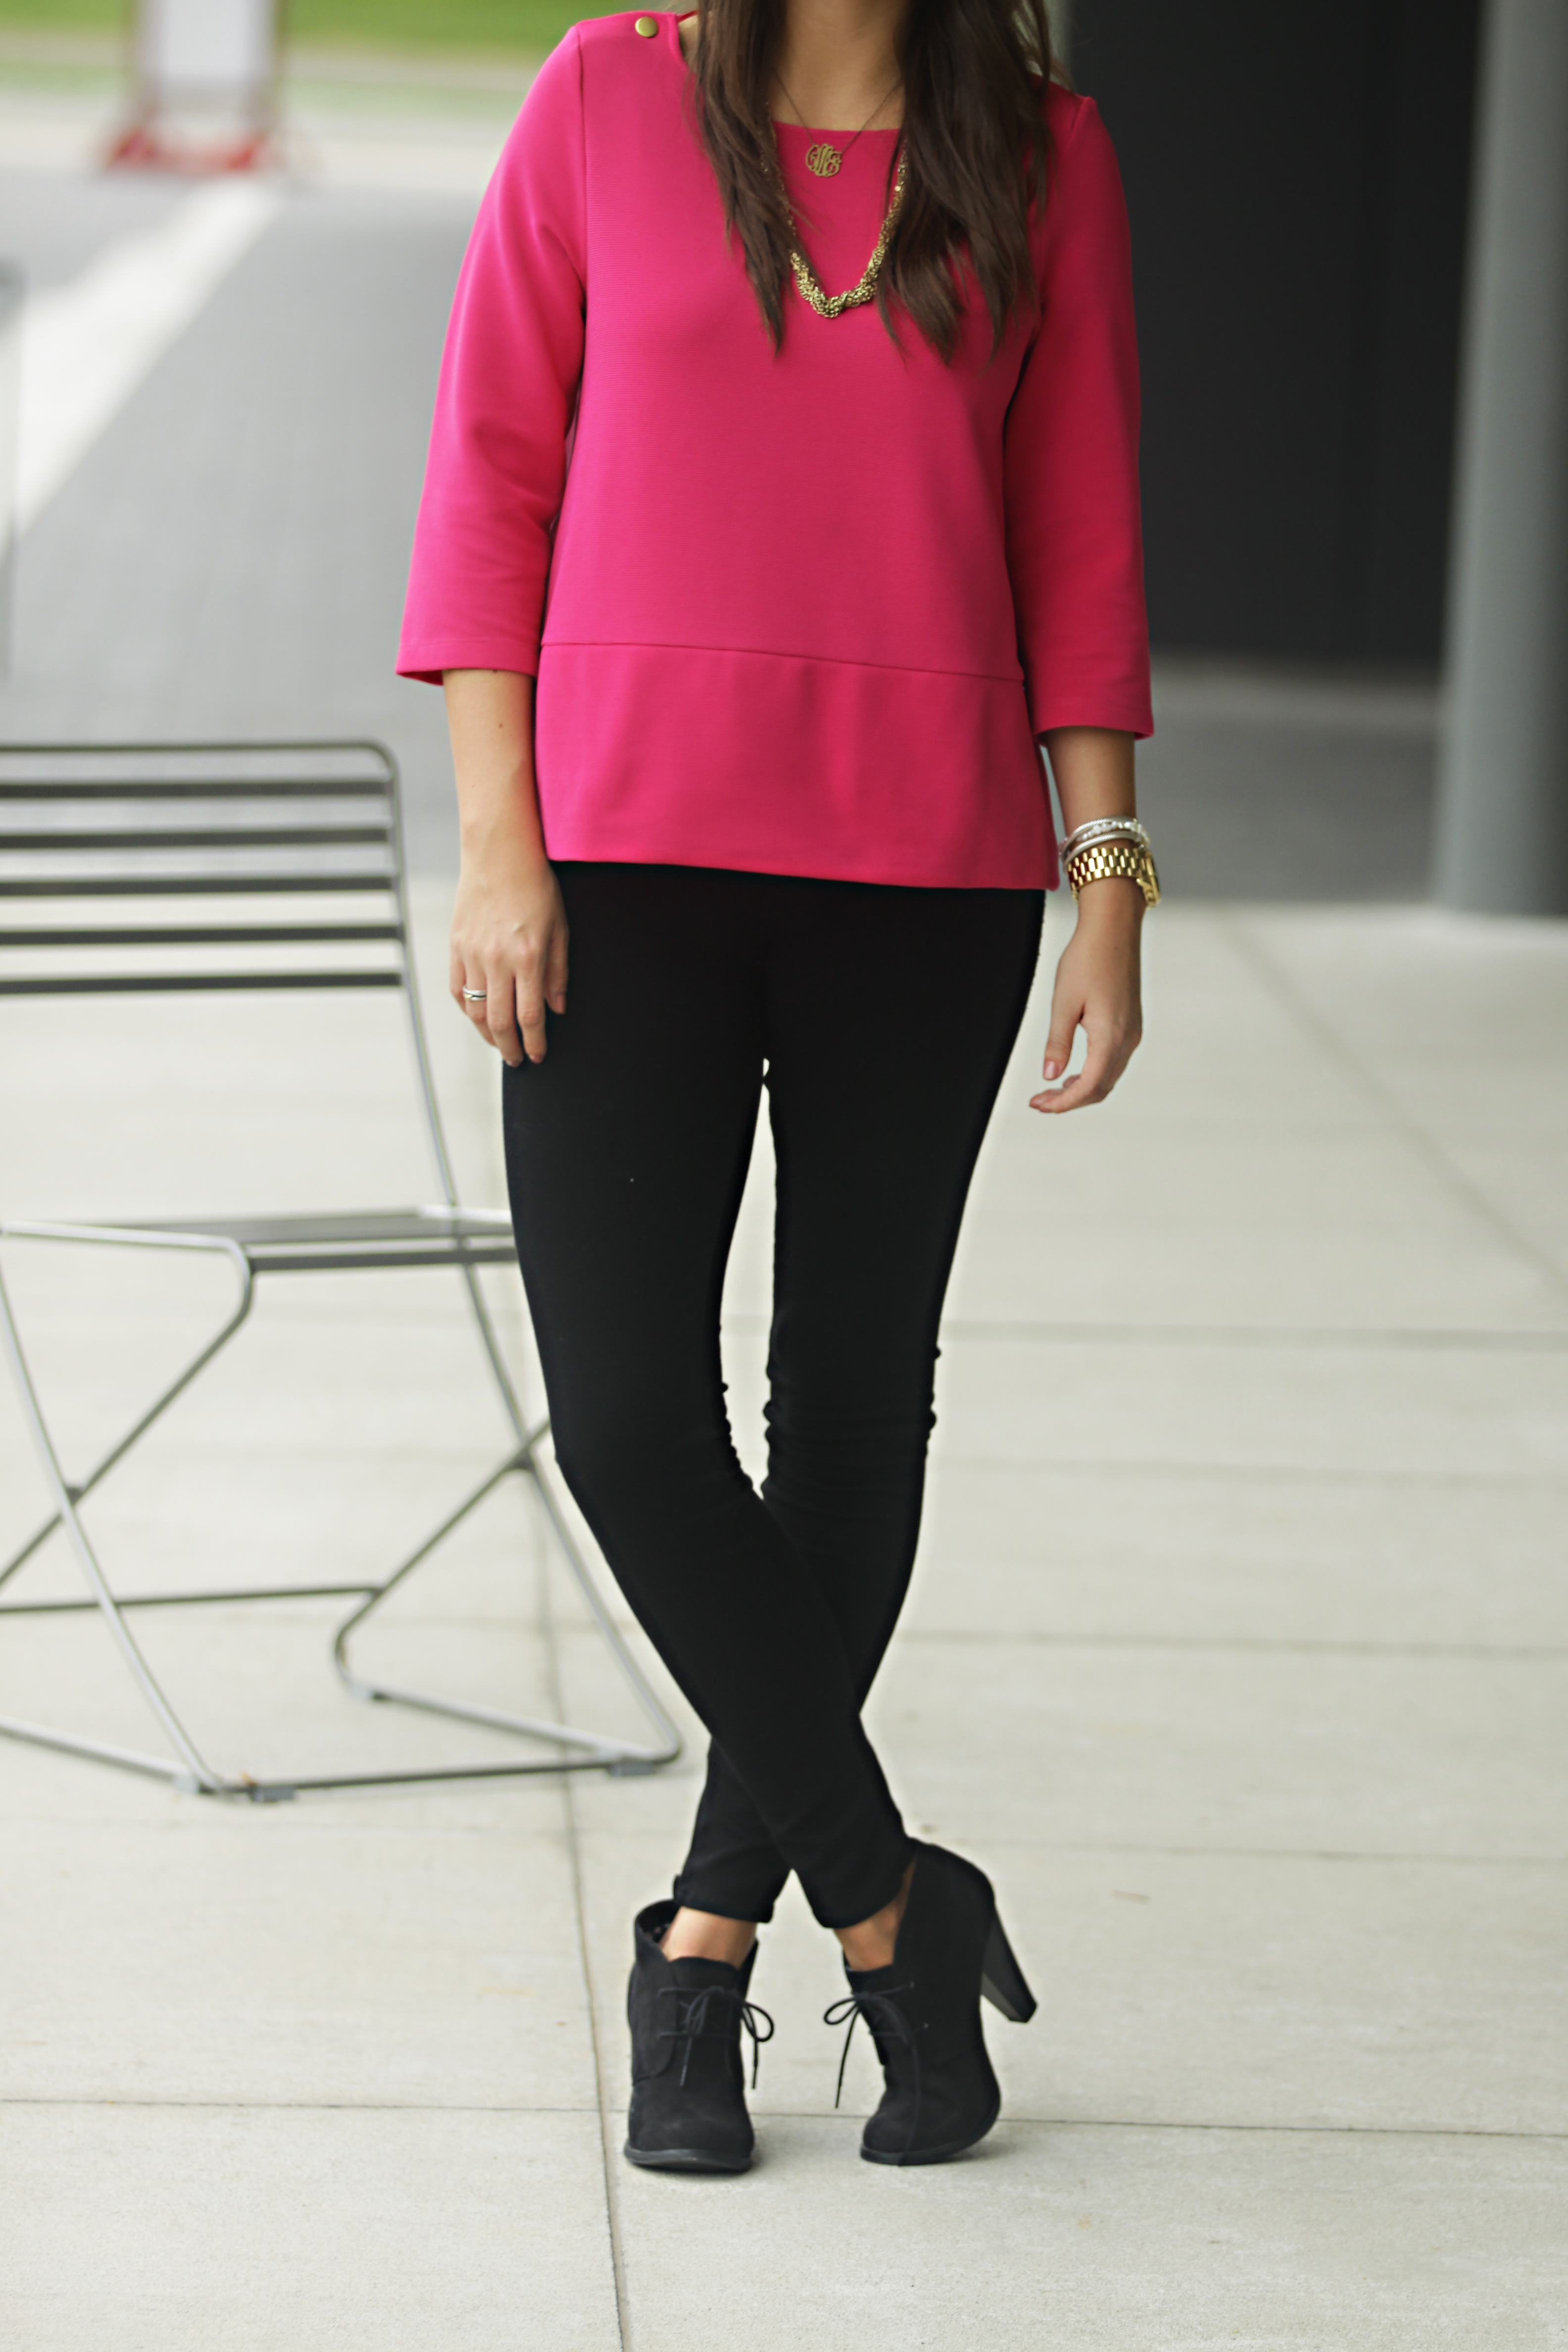 Because skinny jeans have gone from left-field to front row. These days, wearing a pair of black skinny jeans isn't so much a provocative statement as proof you have a classic taste in clothes.